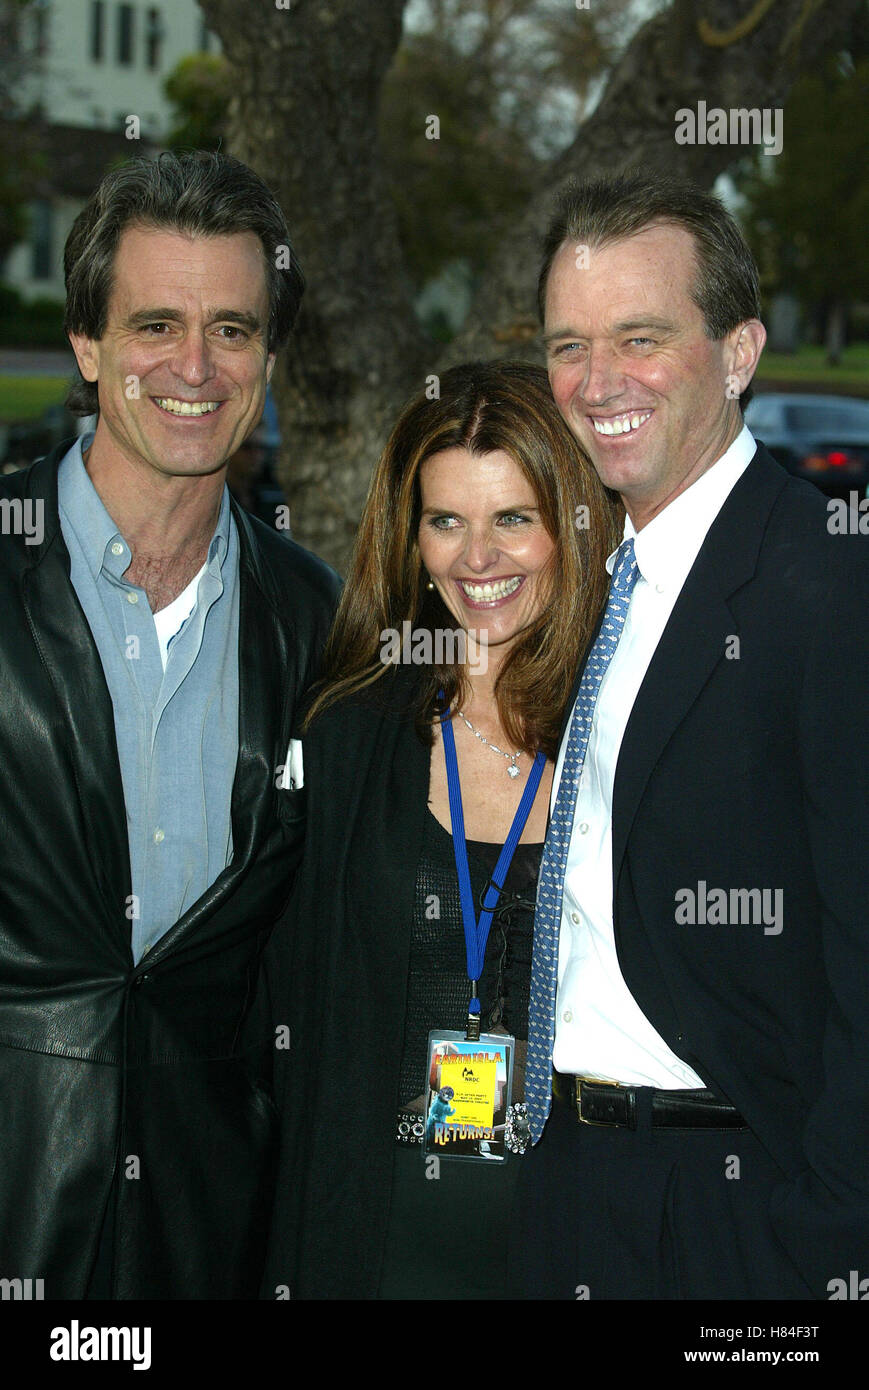 BOBBY & MARIA SHRIVER & RFK JR EARTH TO L.A. II! BENFEIT WADSWORTH THEATRE BRENTWOOD LOS ANGELES USA 10 - Stock Image